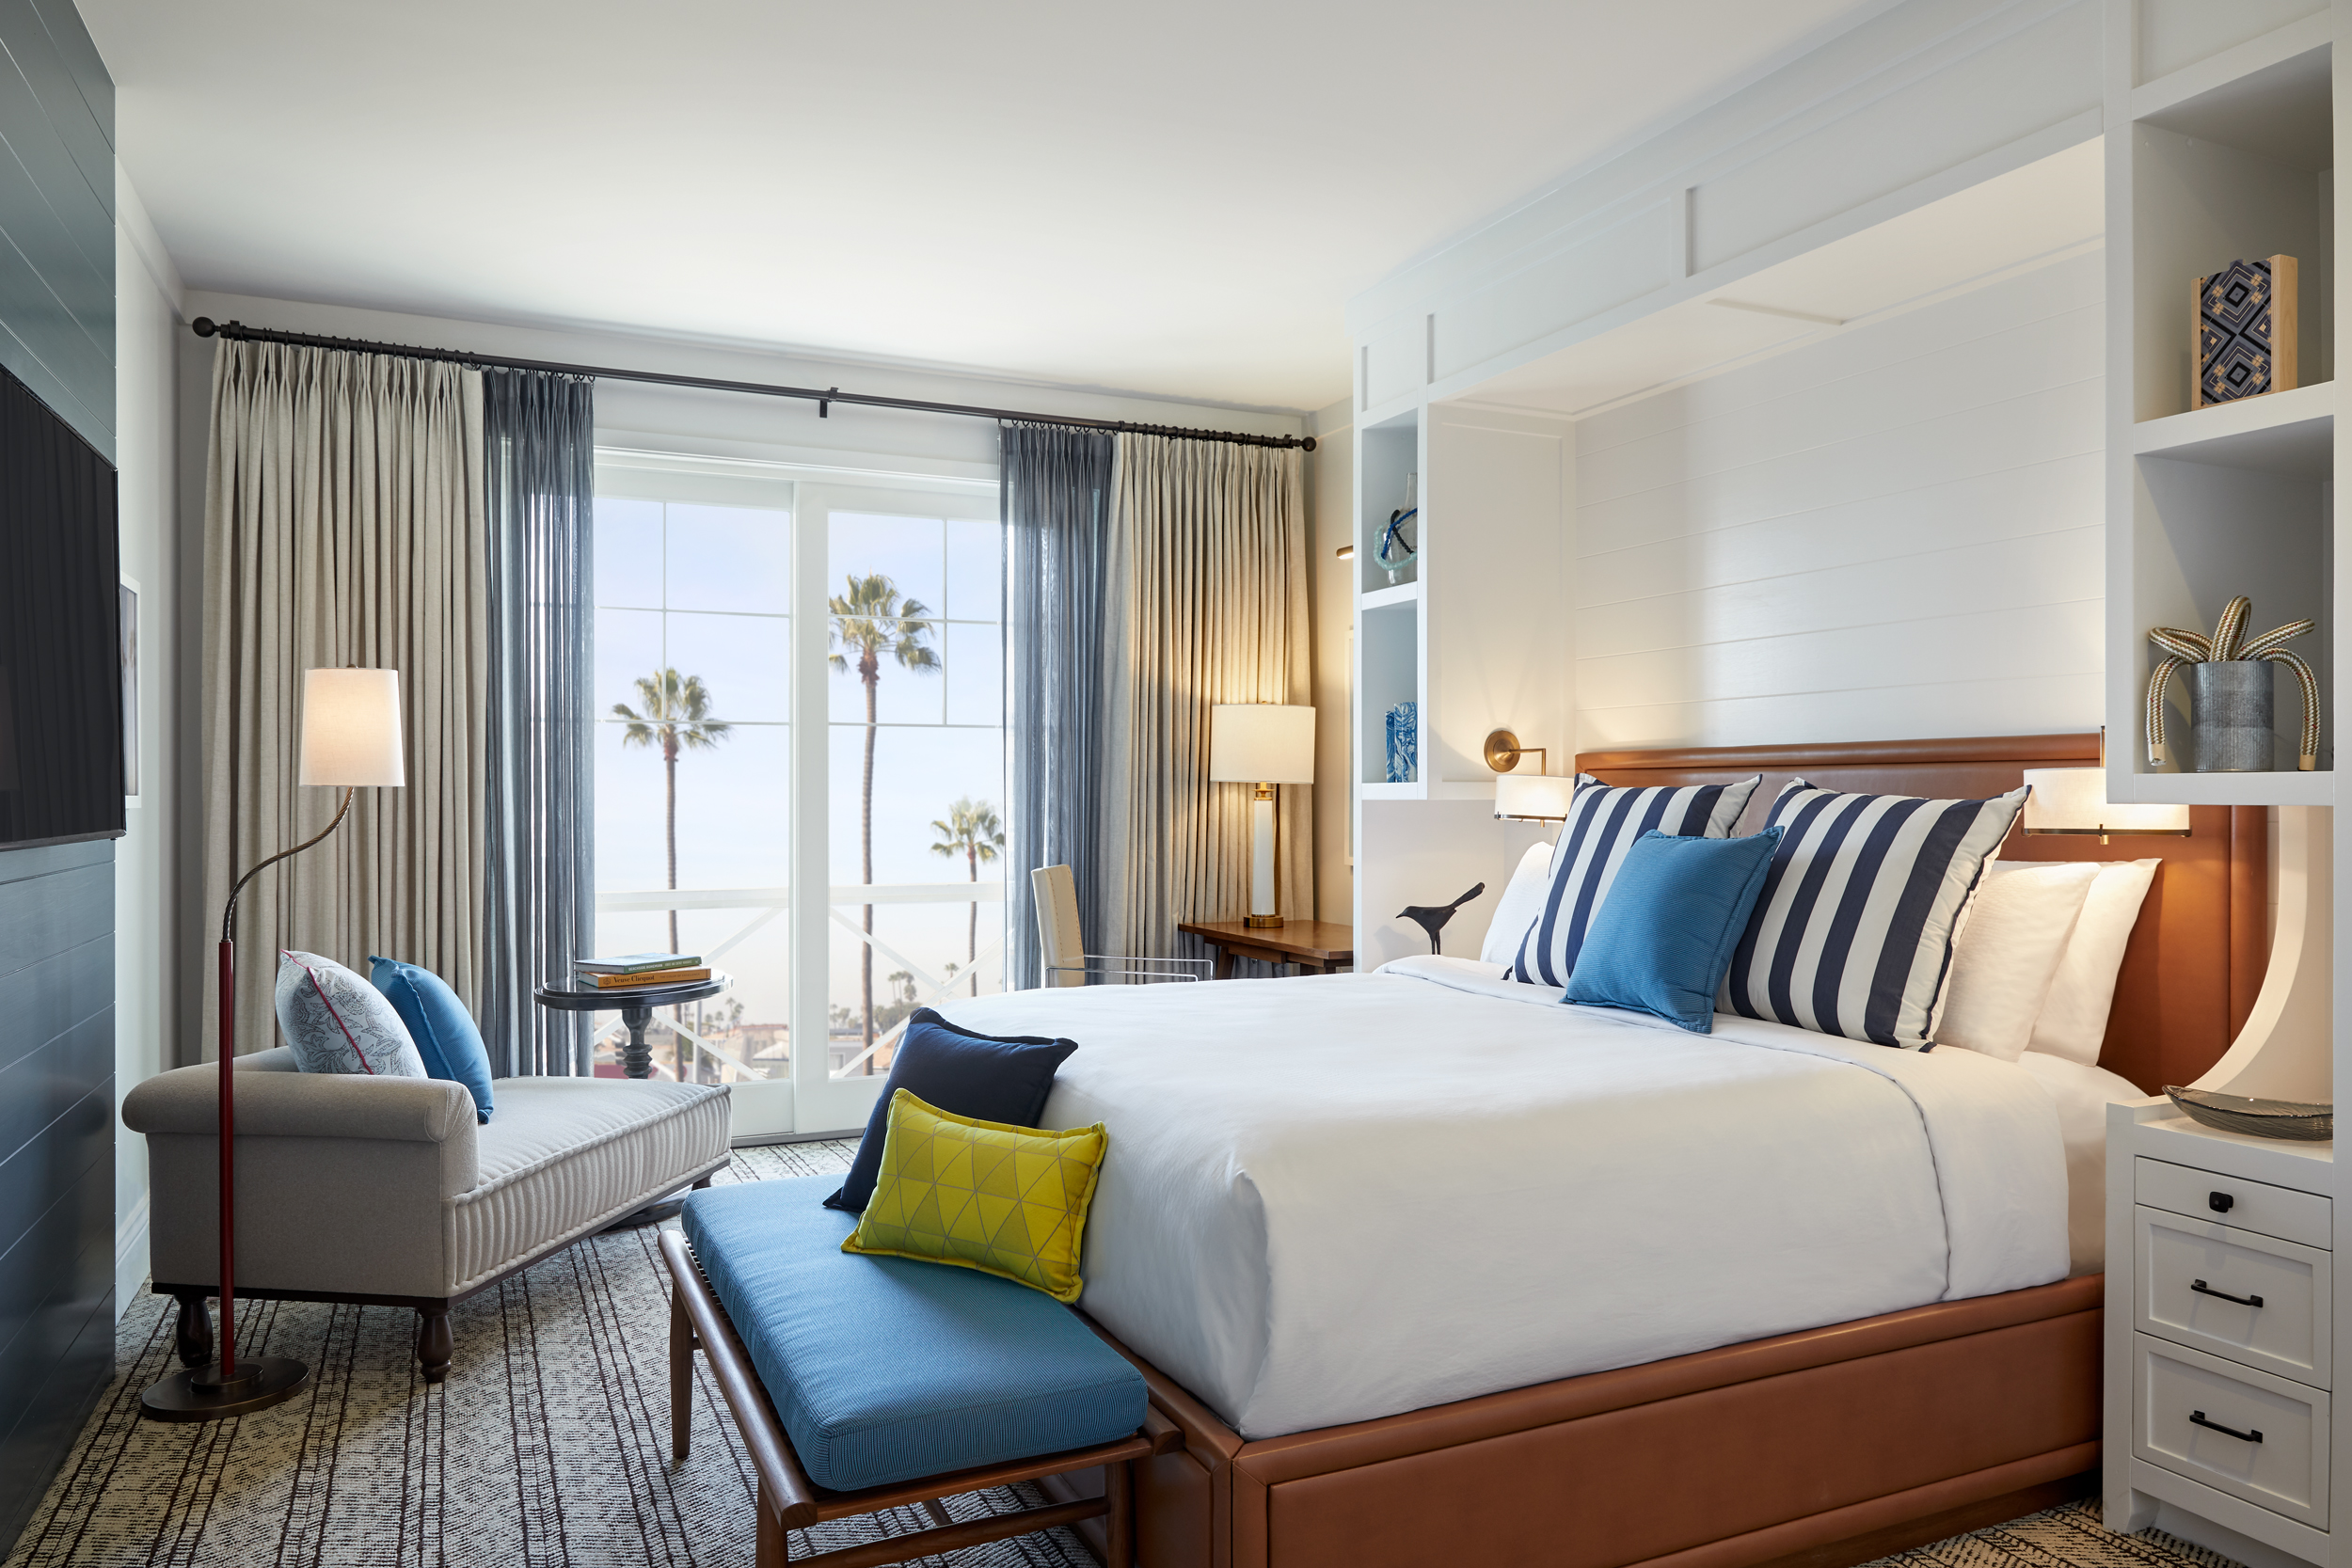 50 New Hotel Openings For 2018 | North America | Lido House, Autograph Collection Newport Beach, Cali, USA